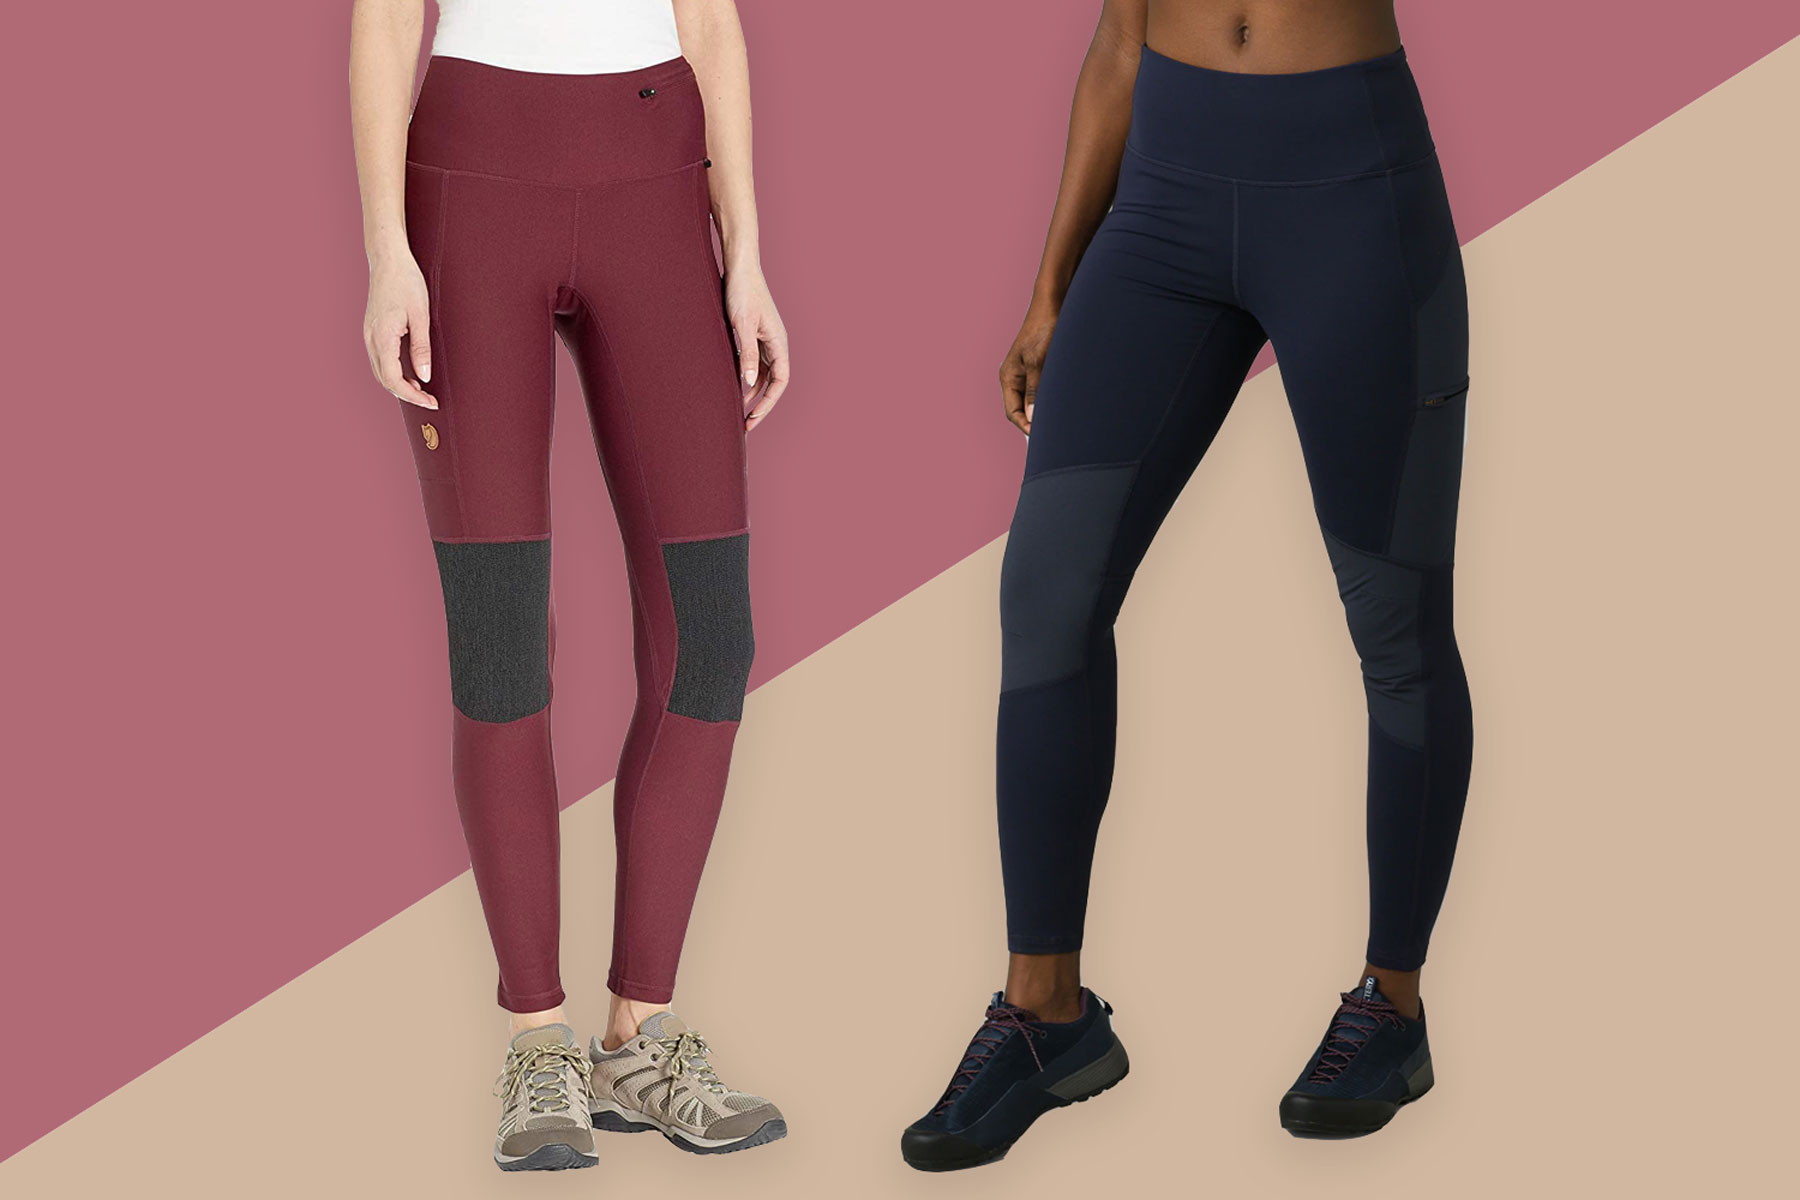 Women wearing deep red and navy blue hiking leggings